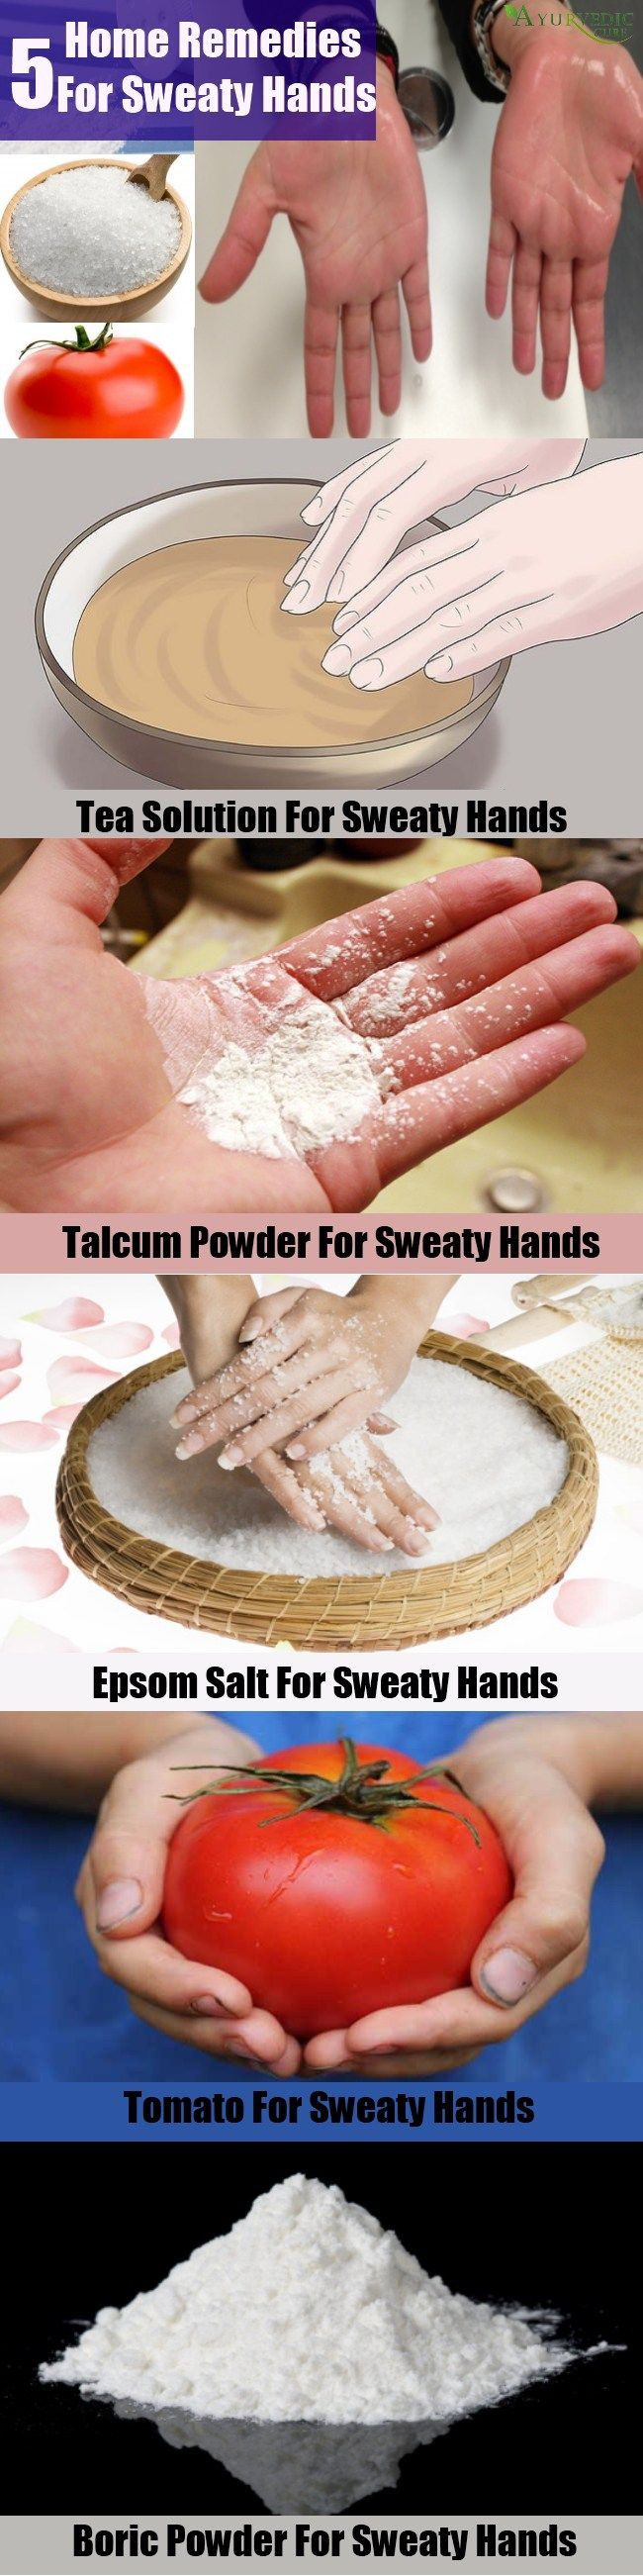 Best Home Remedies For Sweaty Hands